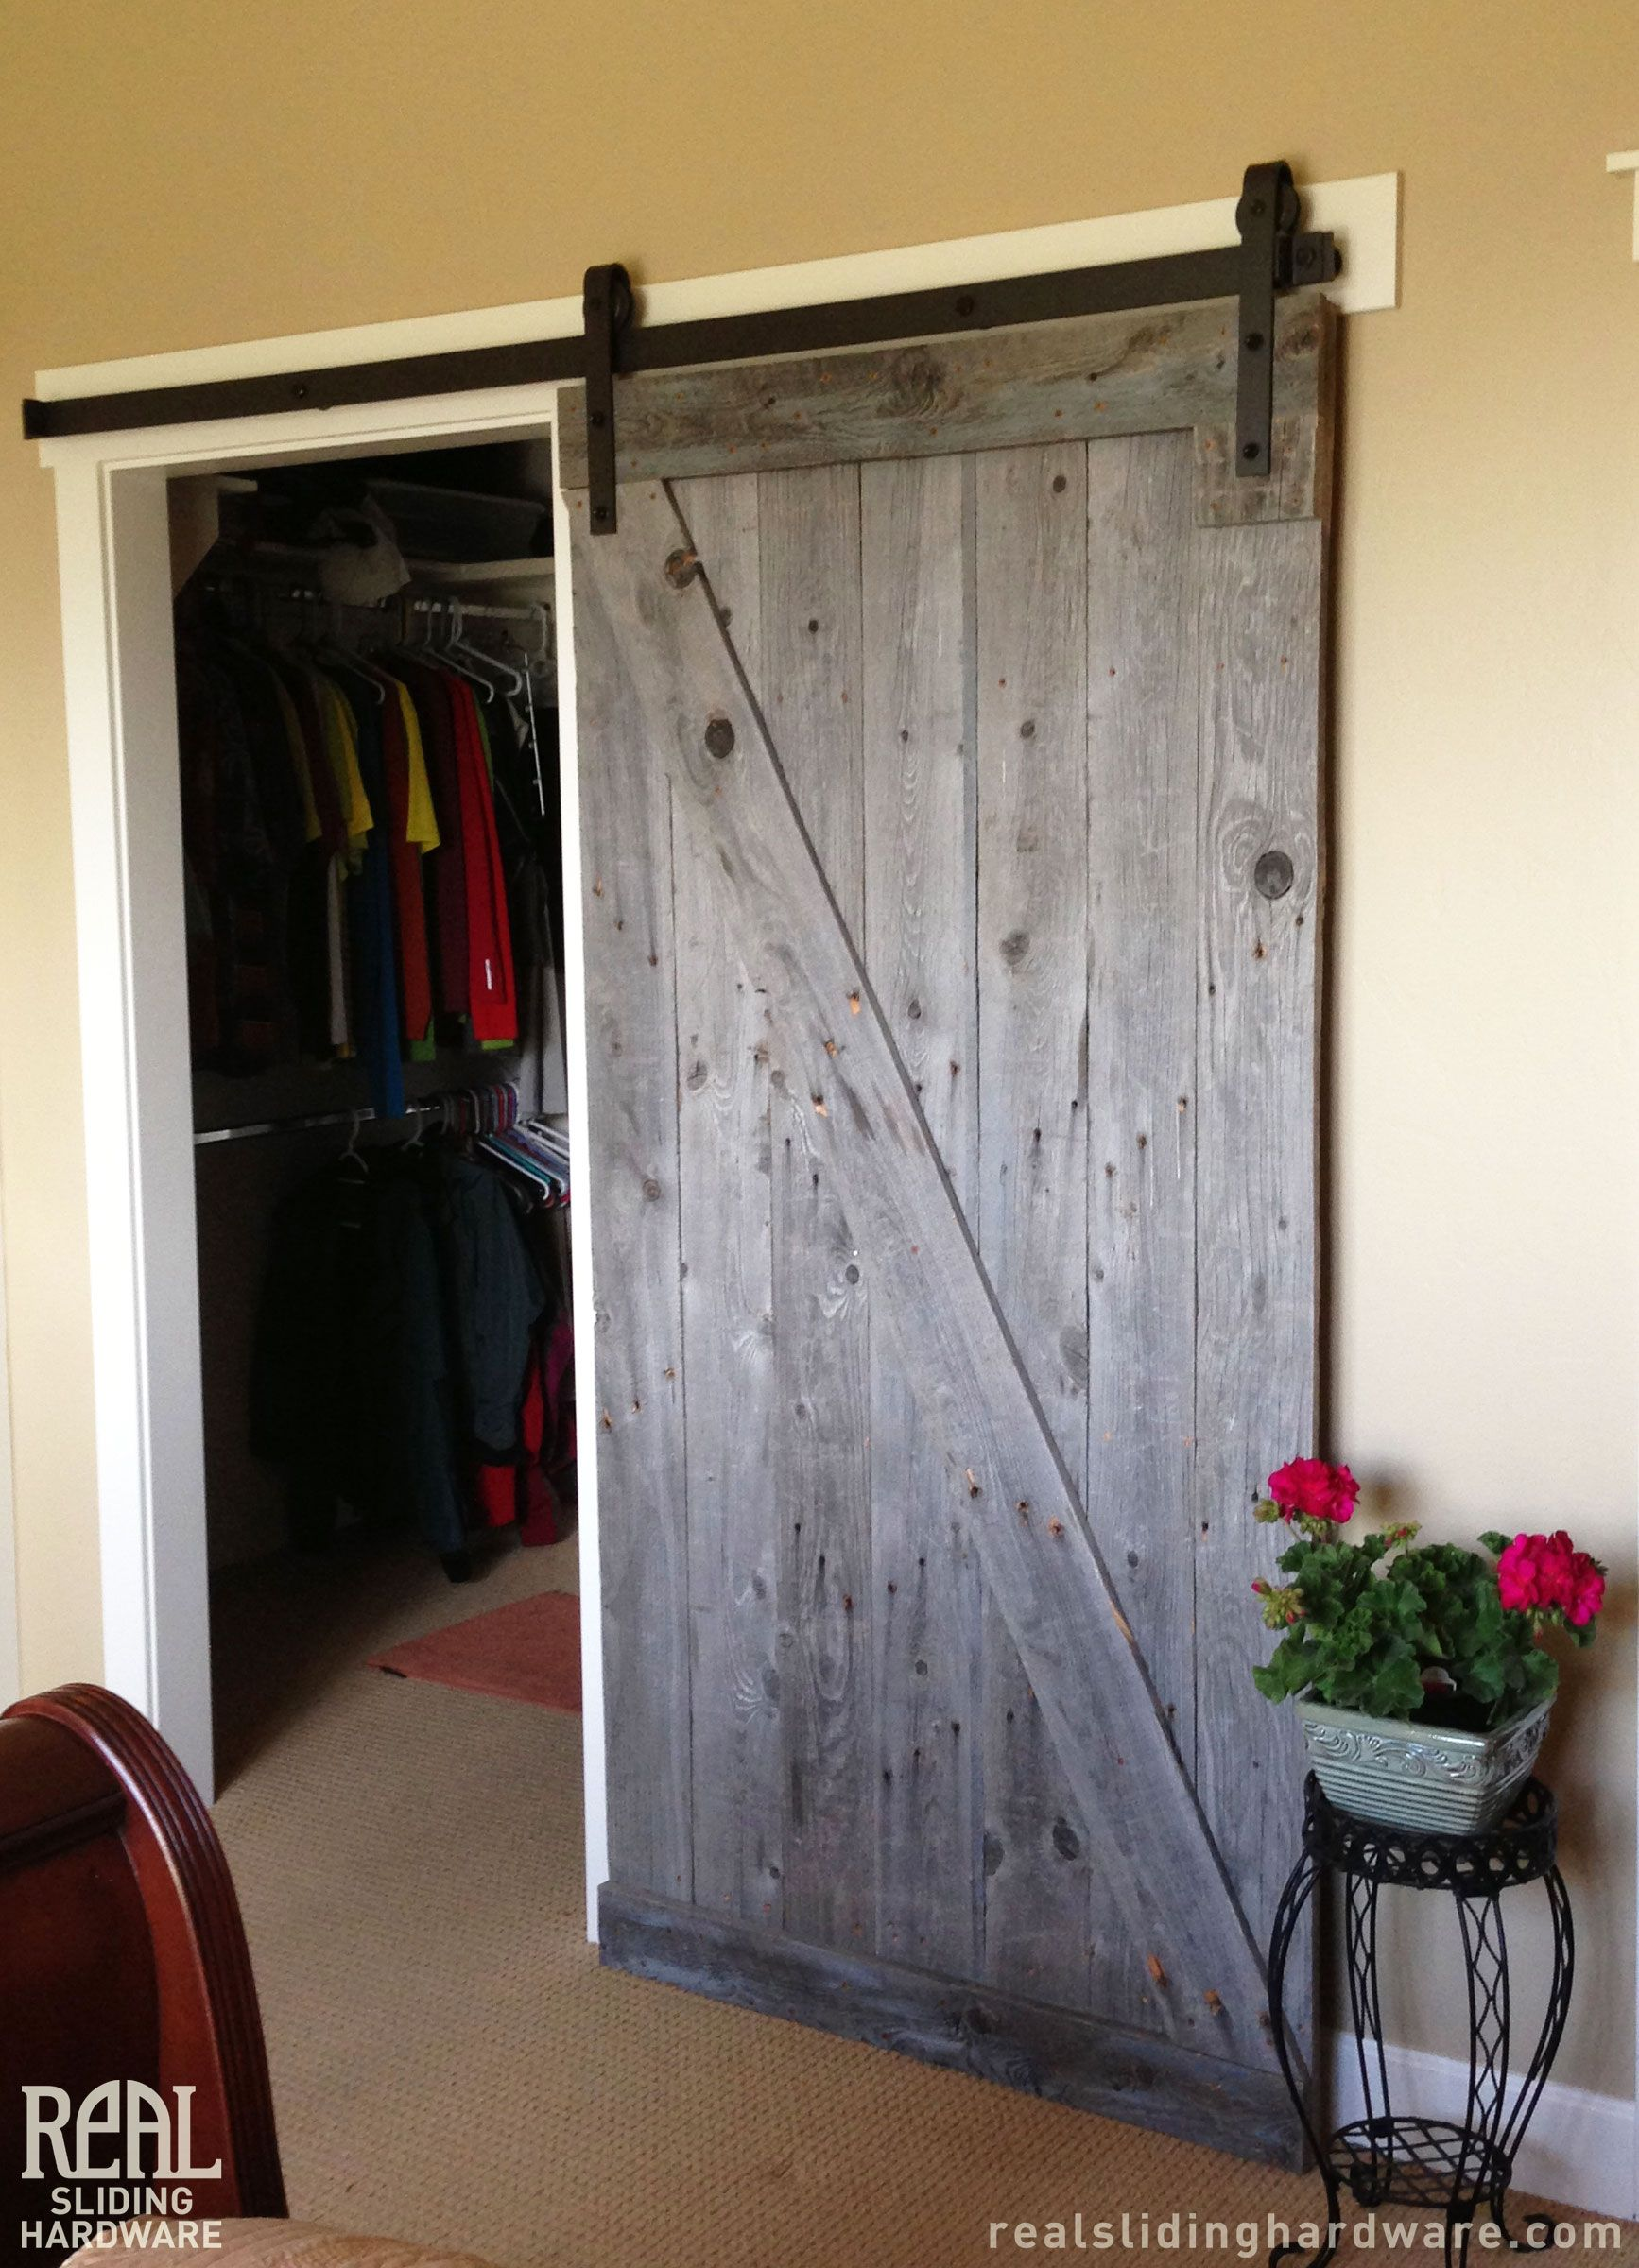 Rugged Z Brace Barn Door Featured With Classic Flat Track Hardware Used As A Closet Door Rustic Wood Doors Barn Door Hardware Barn Door